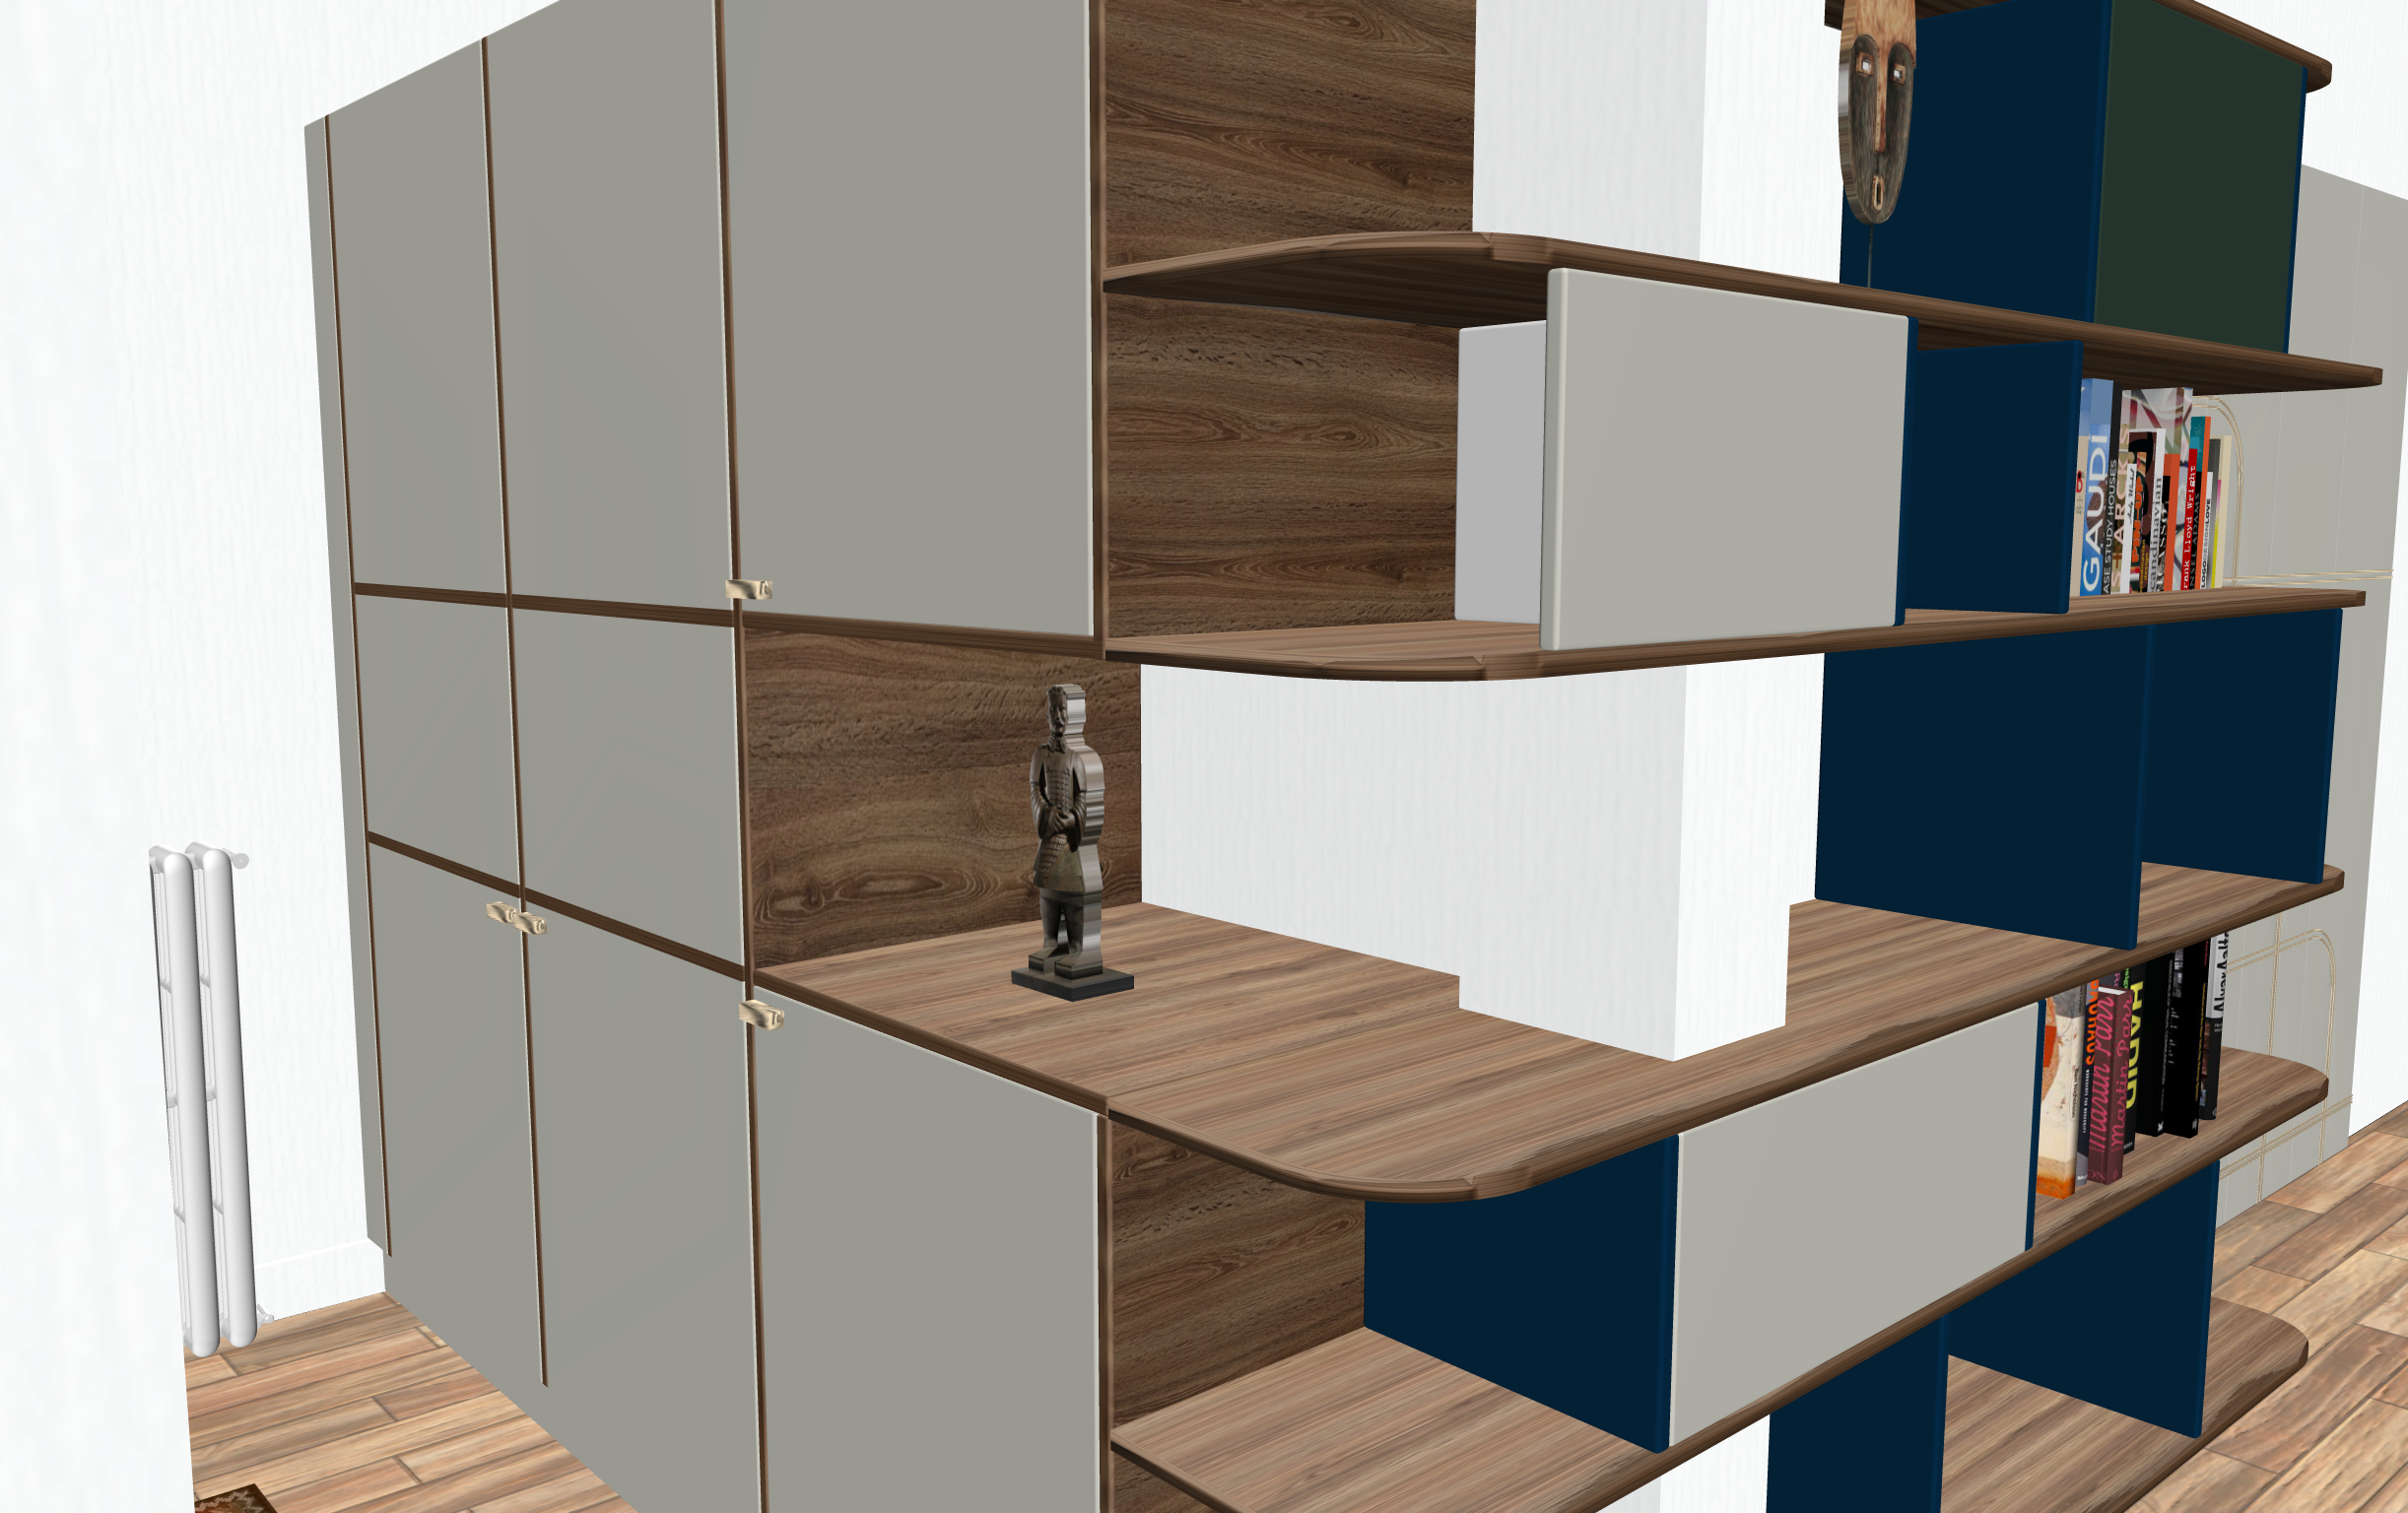 maison_bou_2019_neuilly_3d_8.png